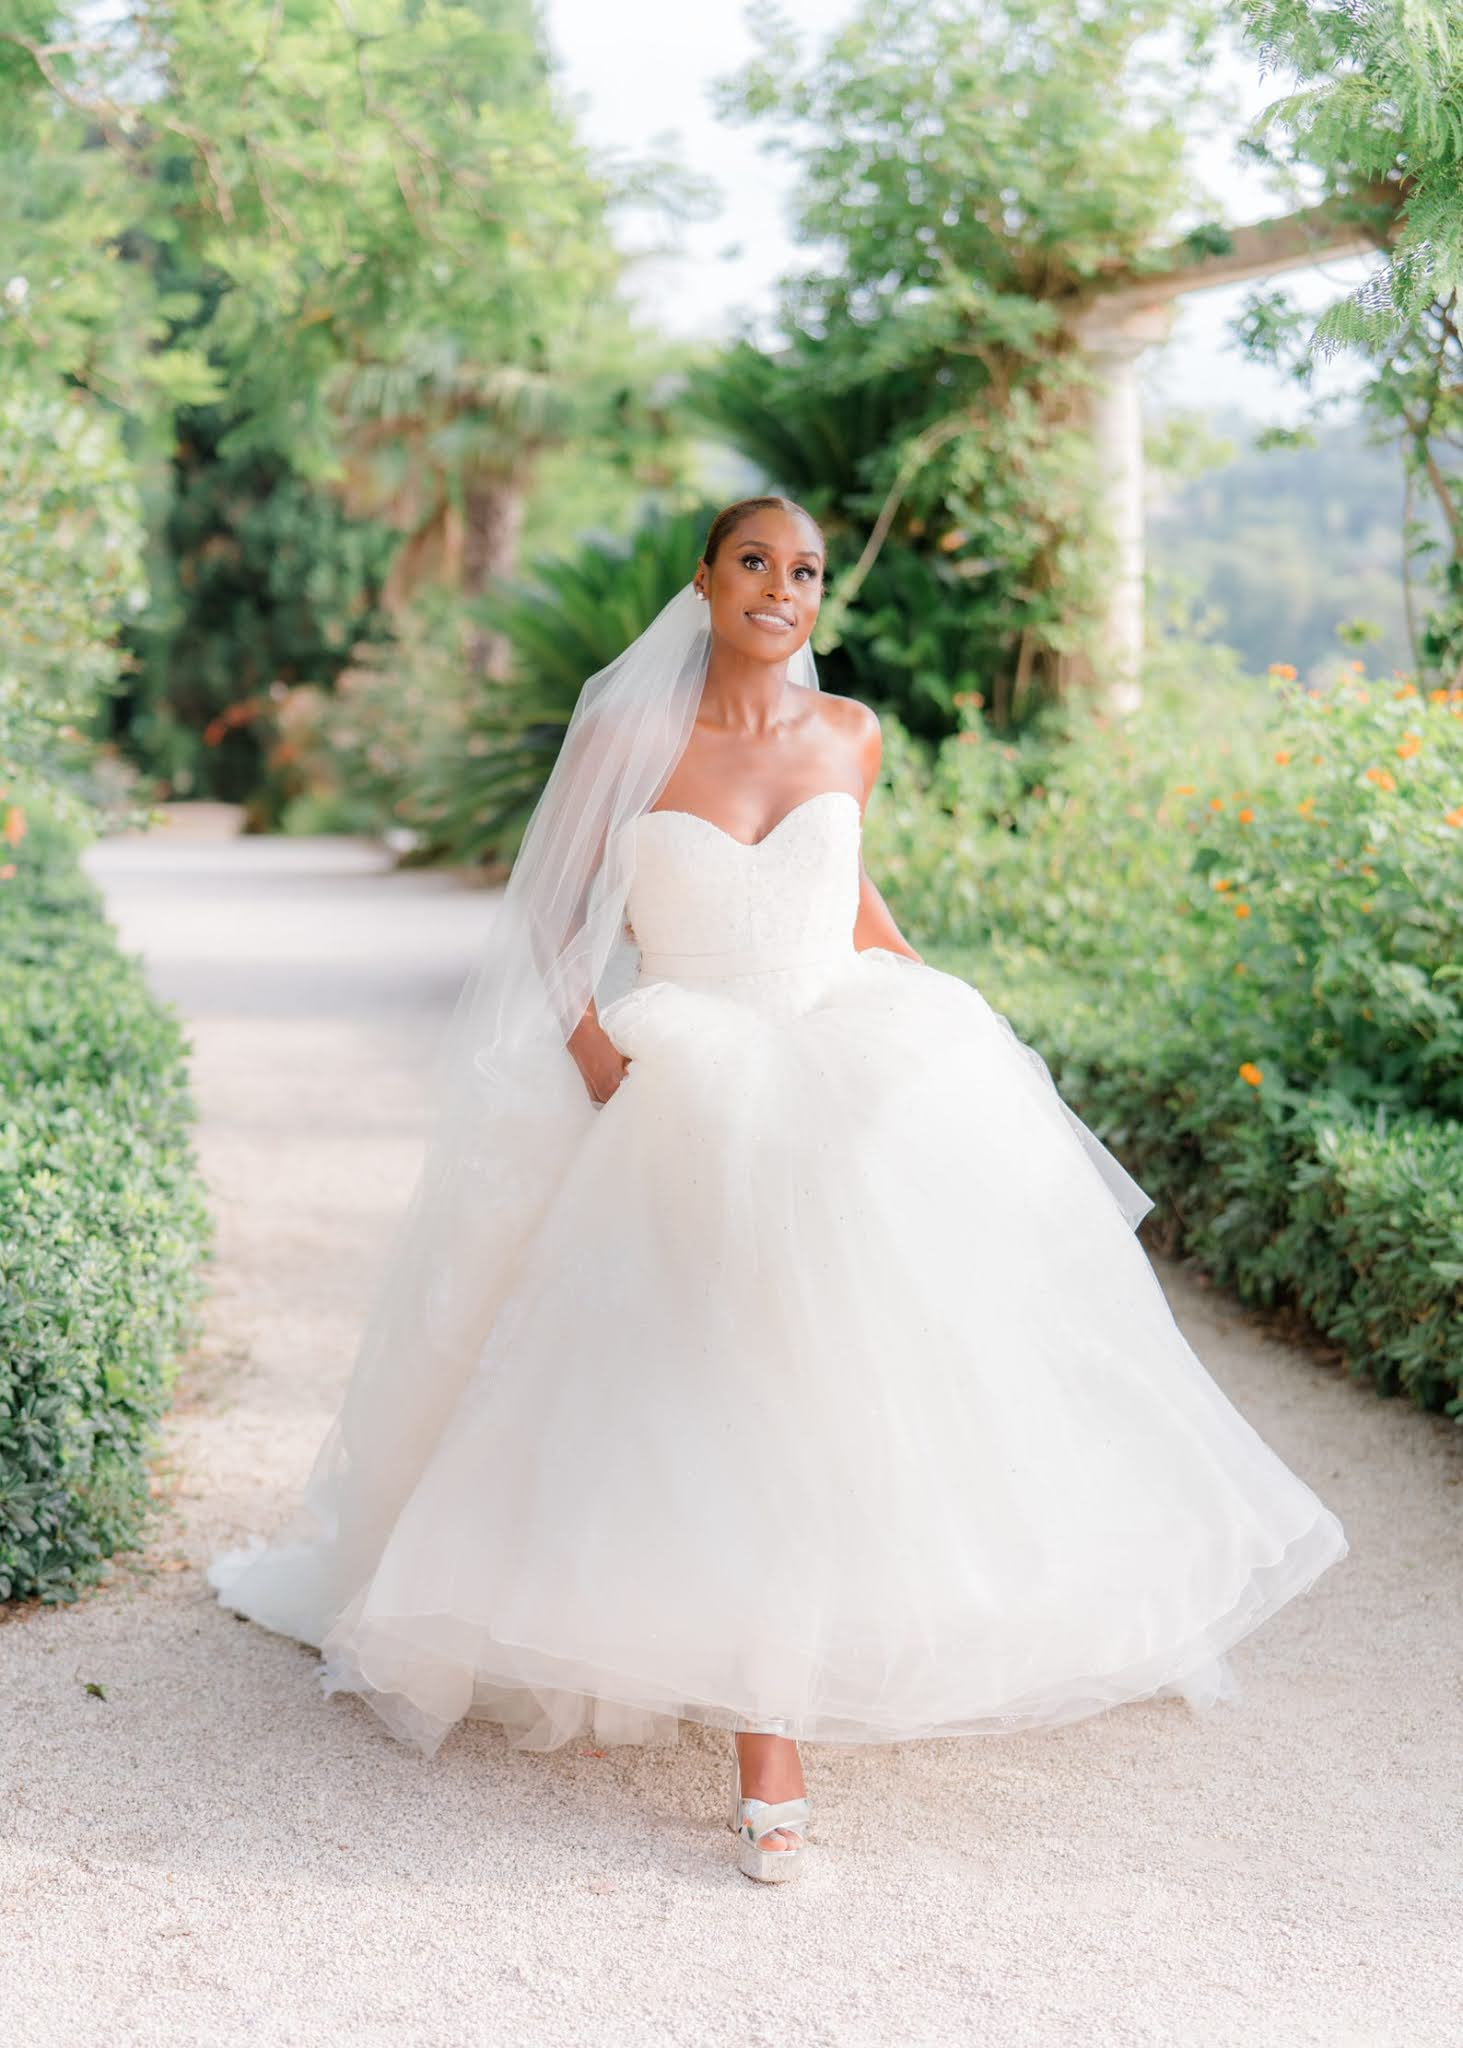 fran acciardo this week's top 10 books weddings and lots of sneakers featuring issa rae wedding dress